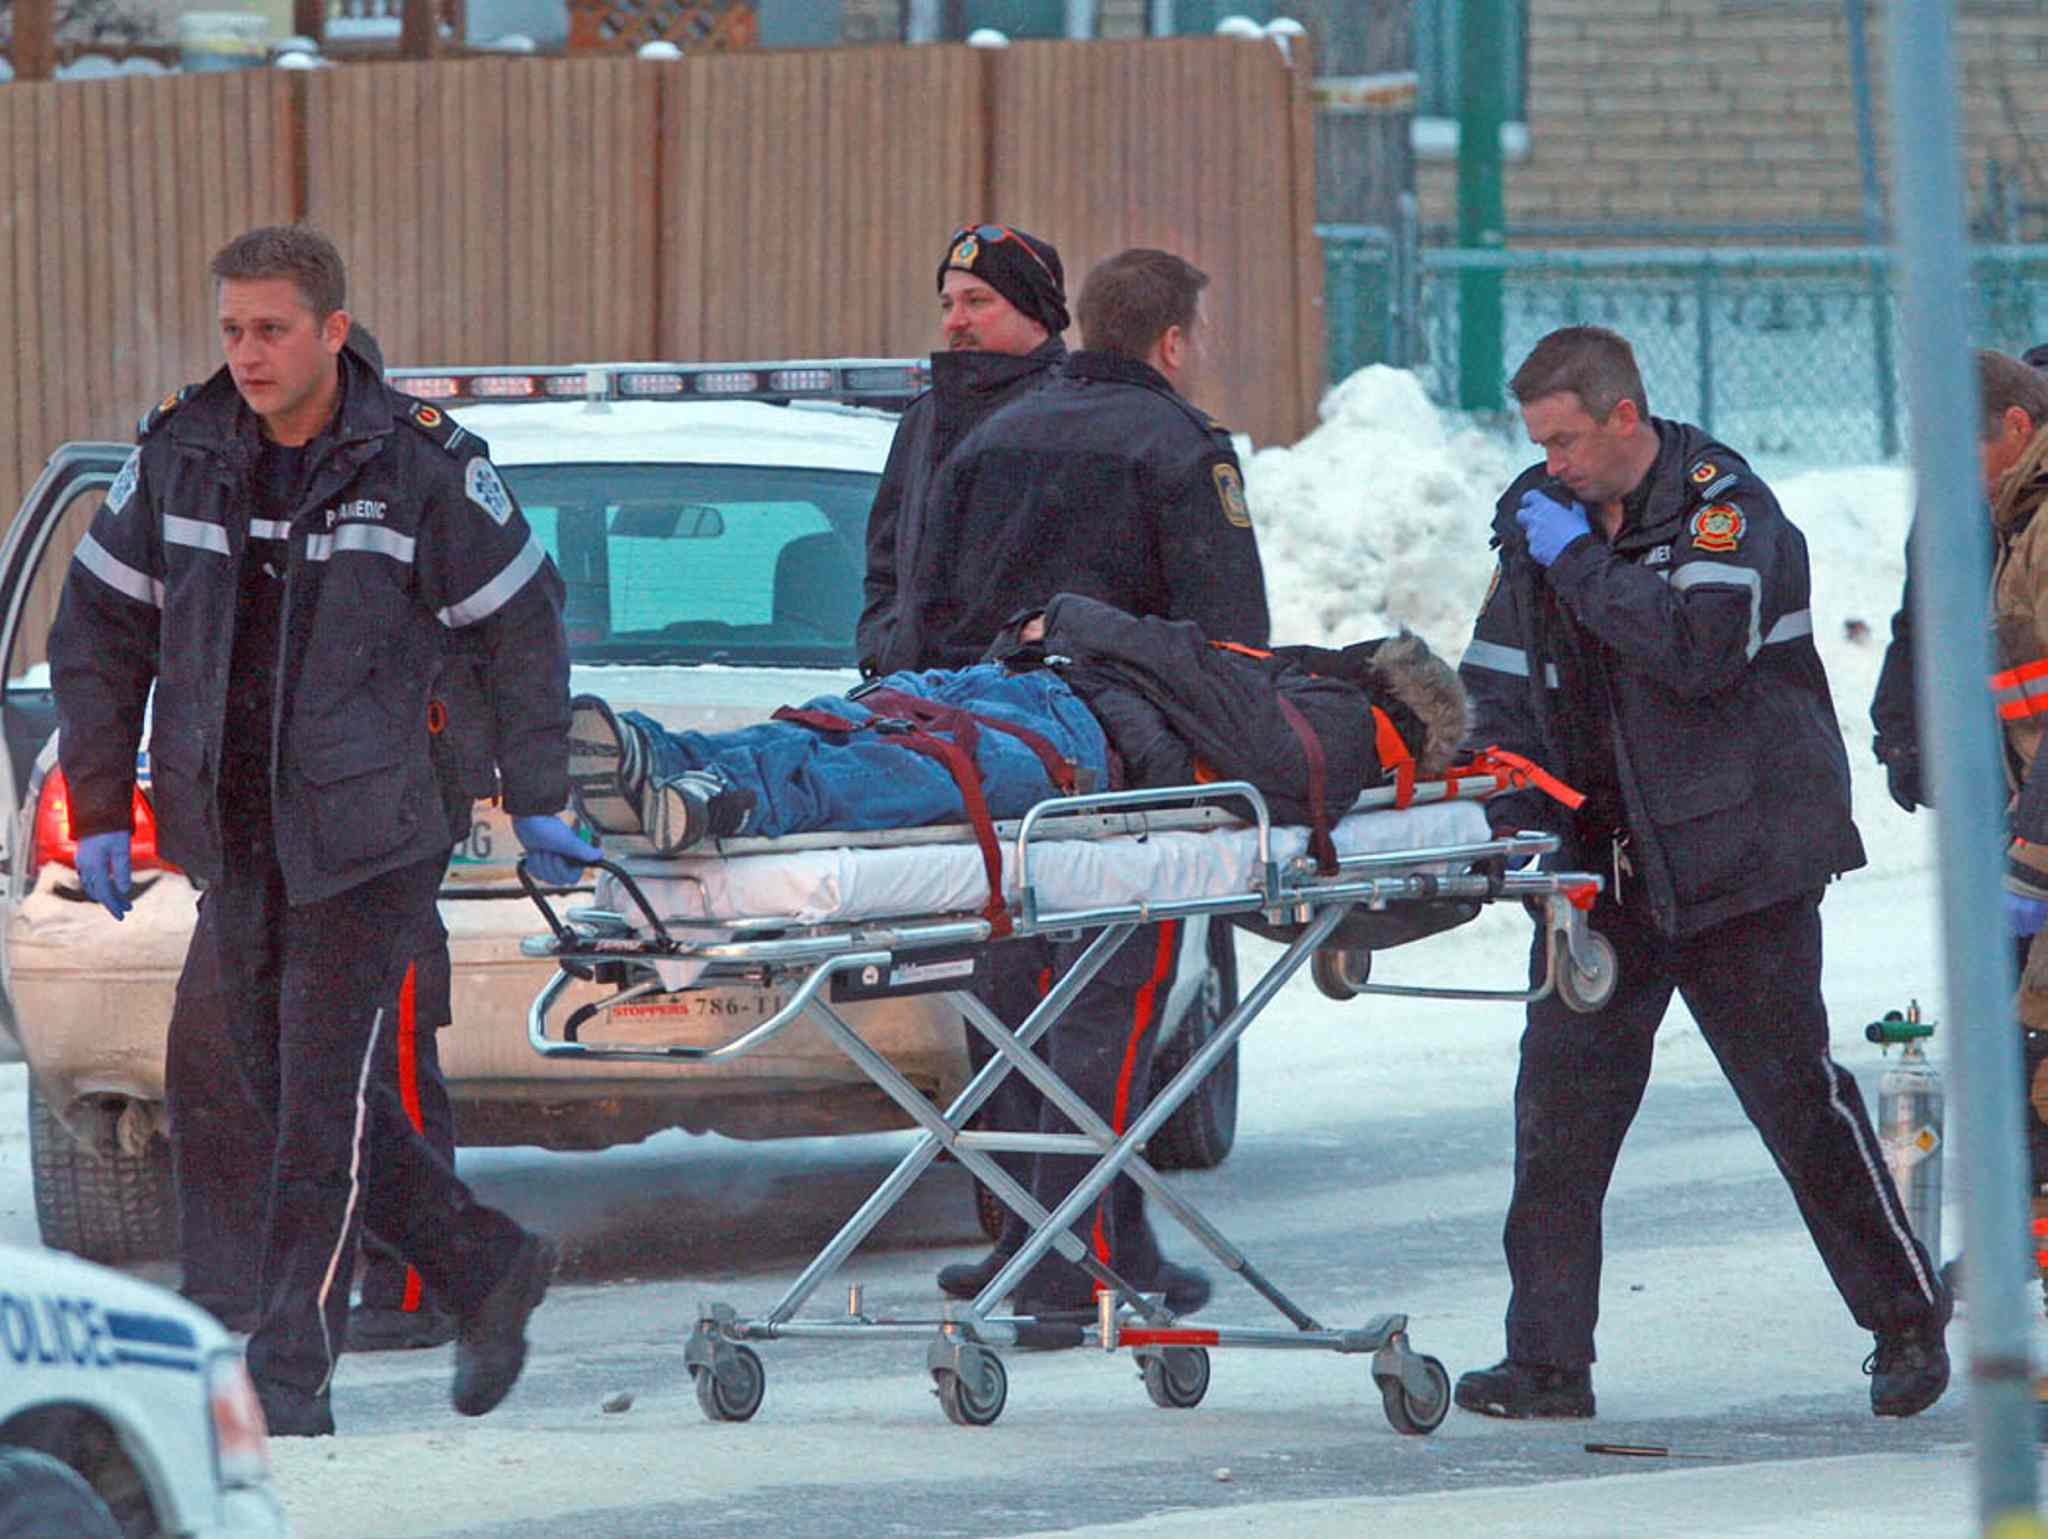 Matthew Prince was shot and wounded by Winnipeg police in 2009.